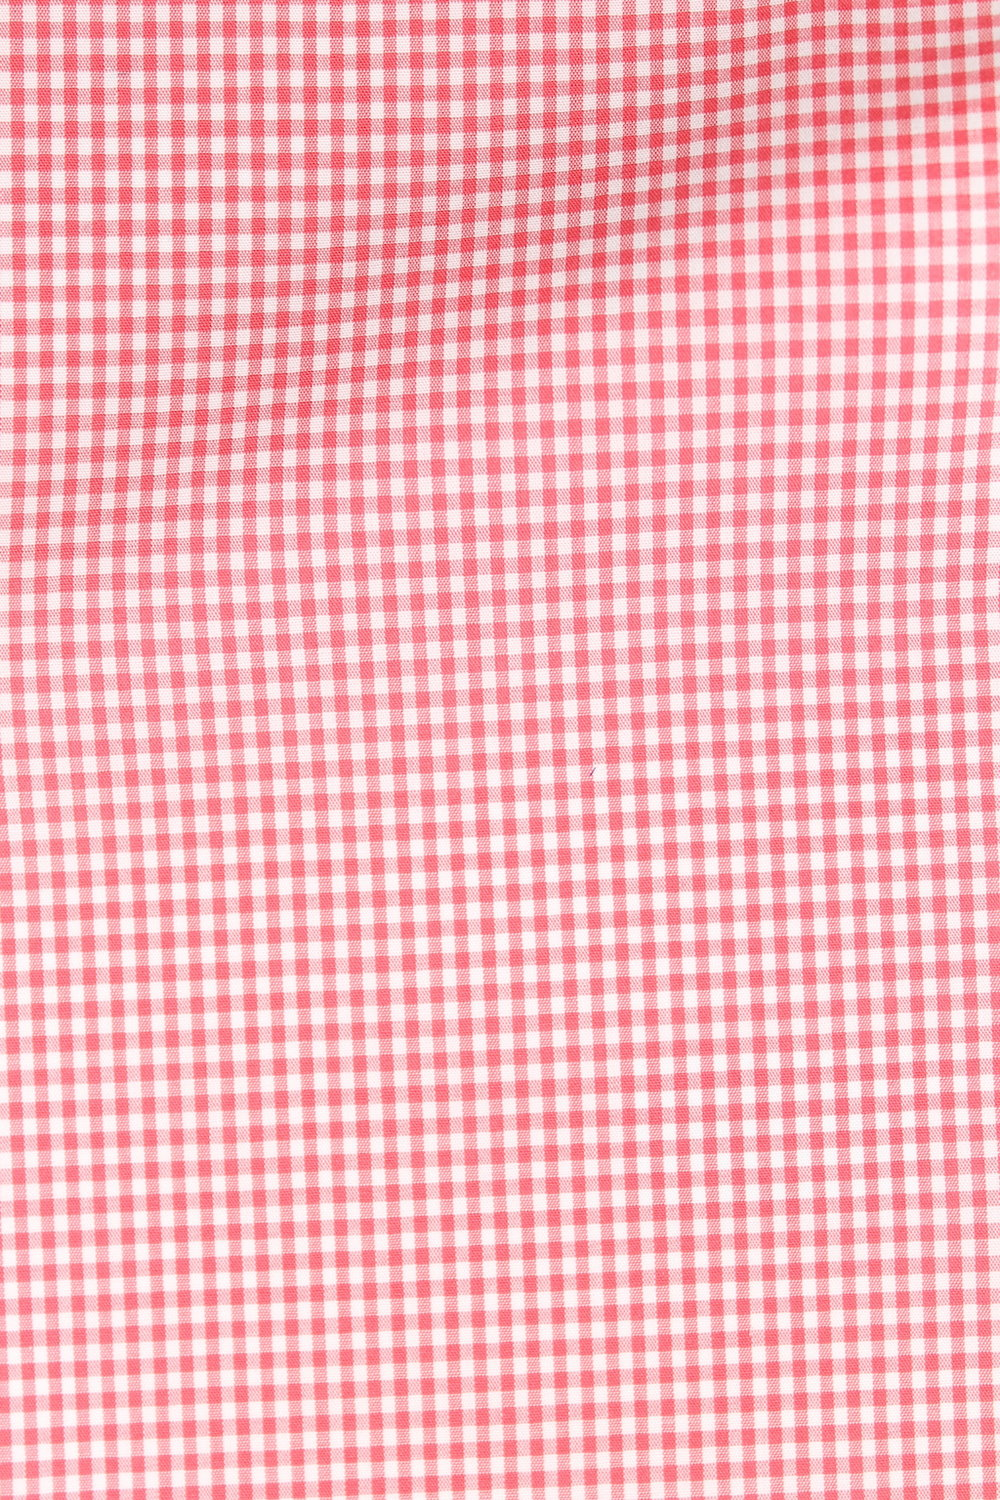 6611 Small Red Gingham.JPG